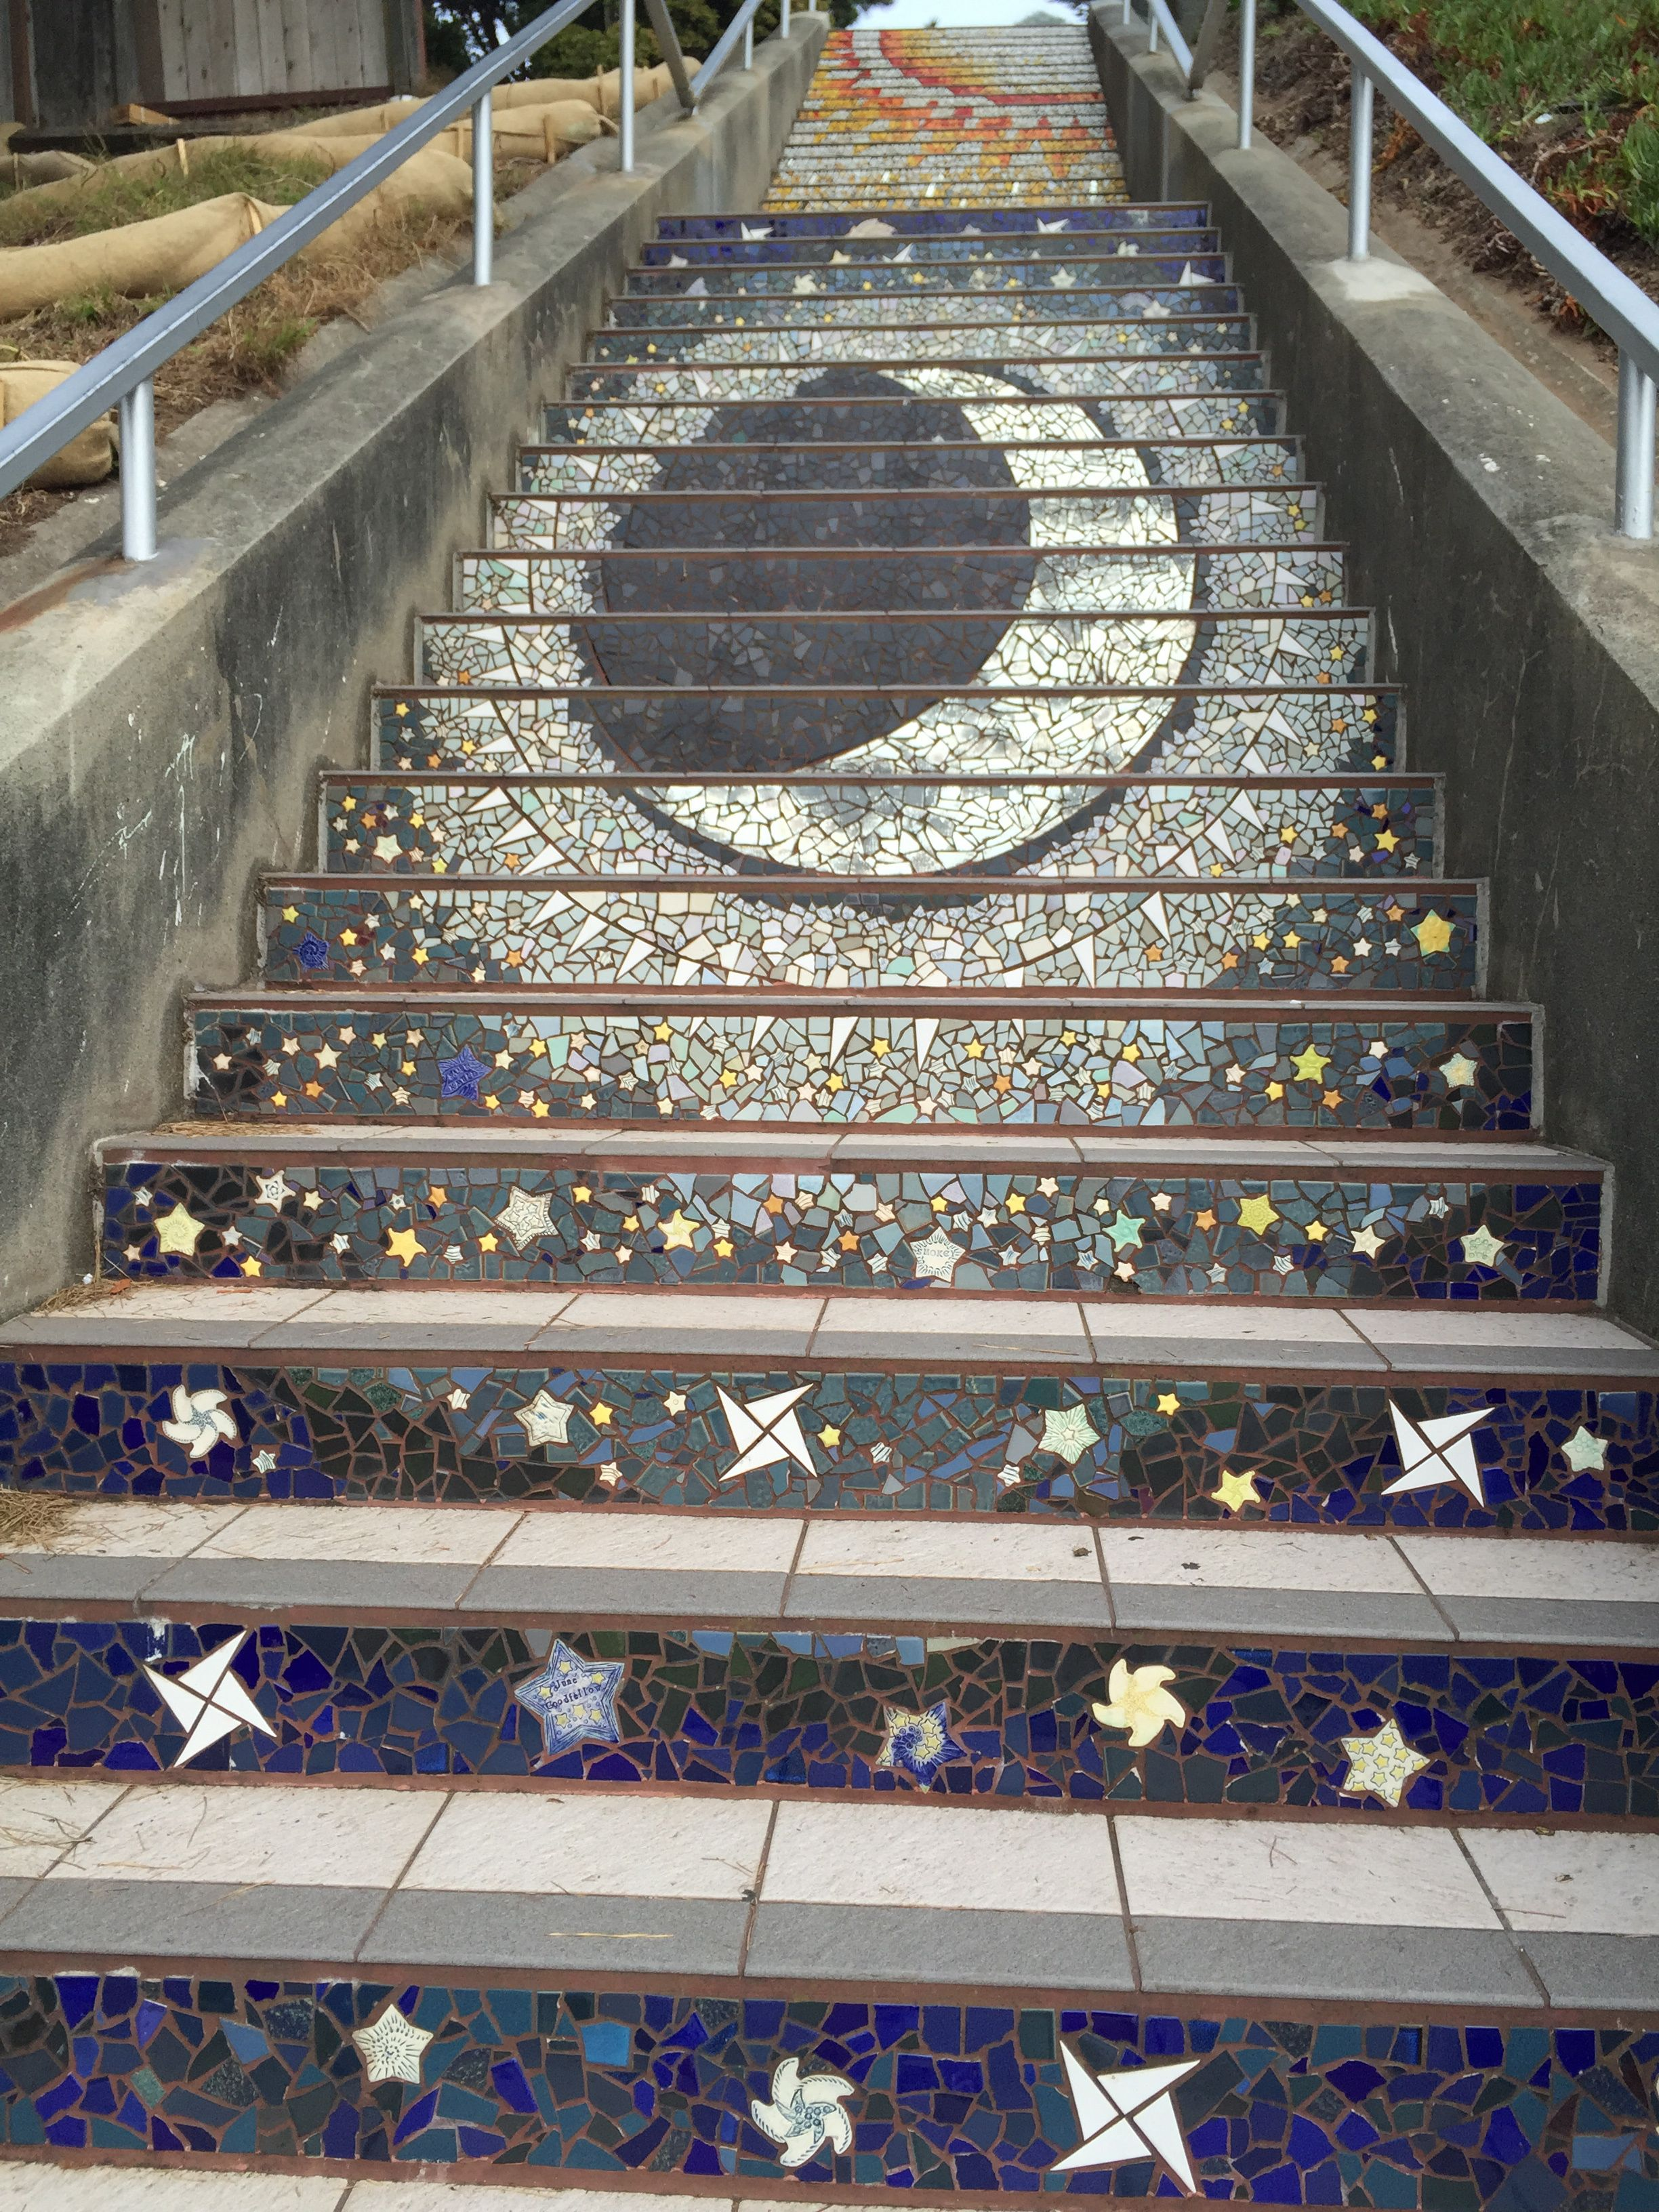 16th Street stairs in San Francisco, CA.